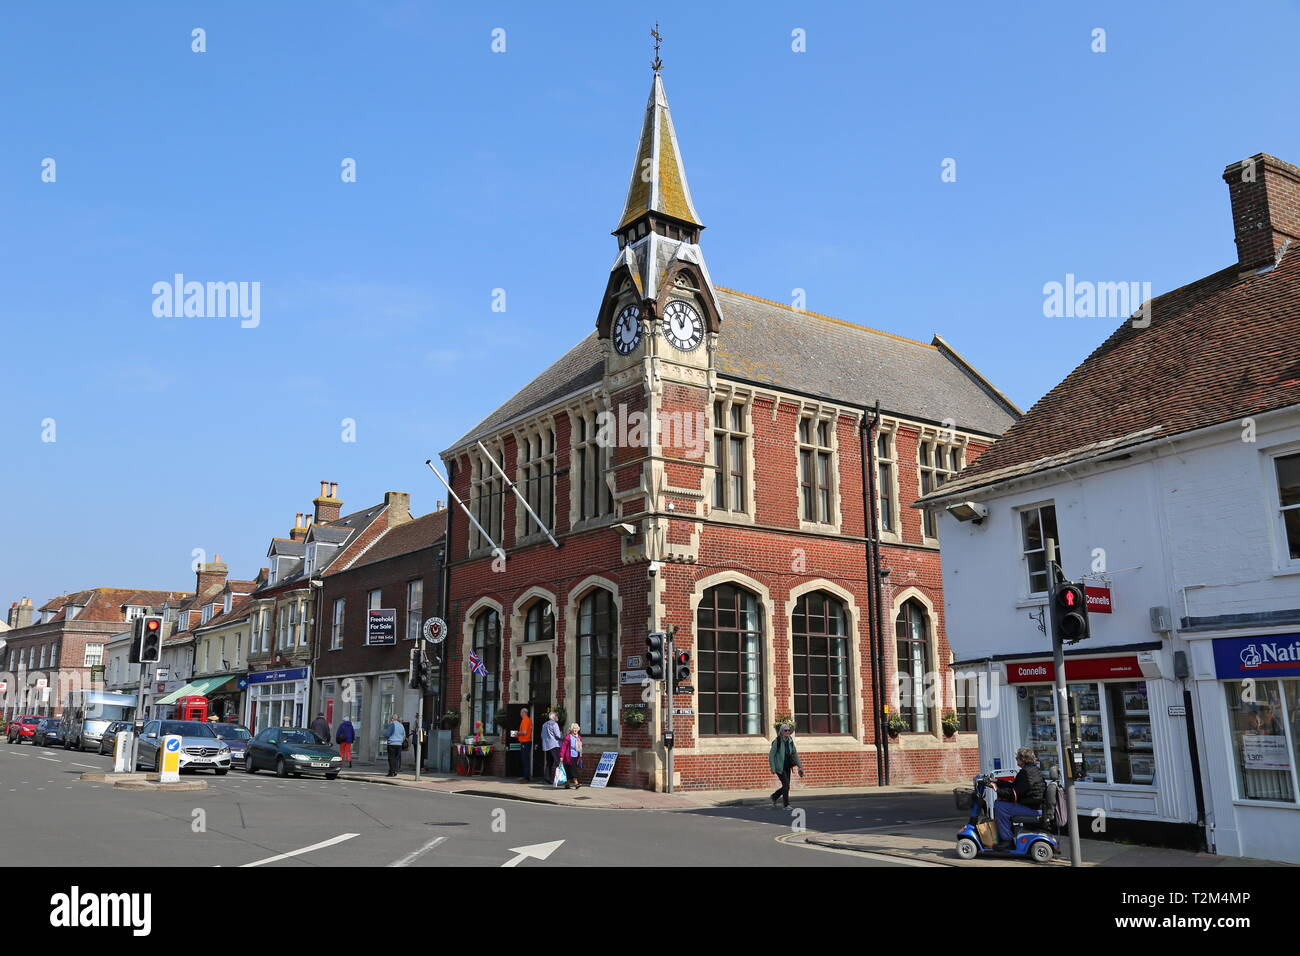 Town Hall and Museum, North Street, Wareham, Isle of Purbeck, Dorset, England, Great Britain, United Kingdom, UK, Europe - Stock Image